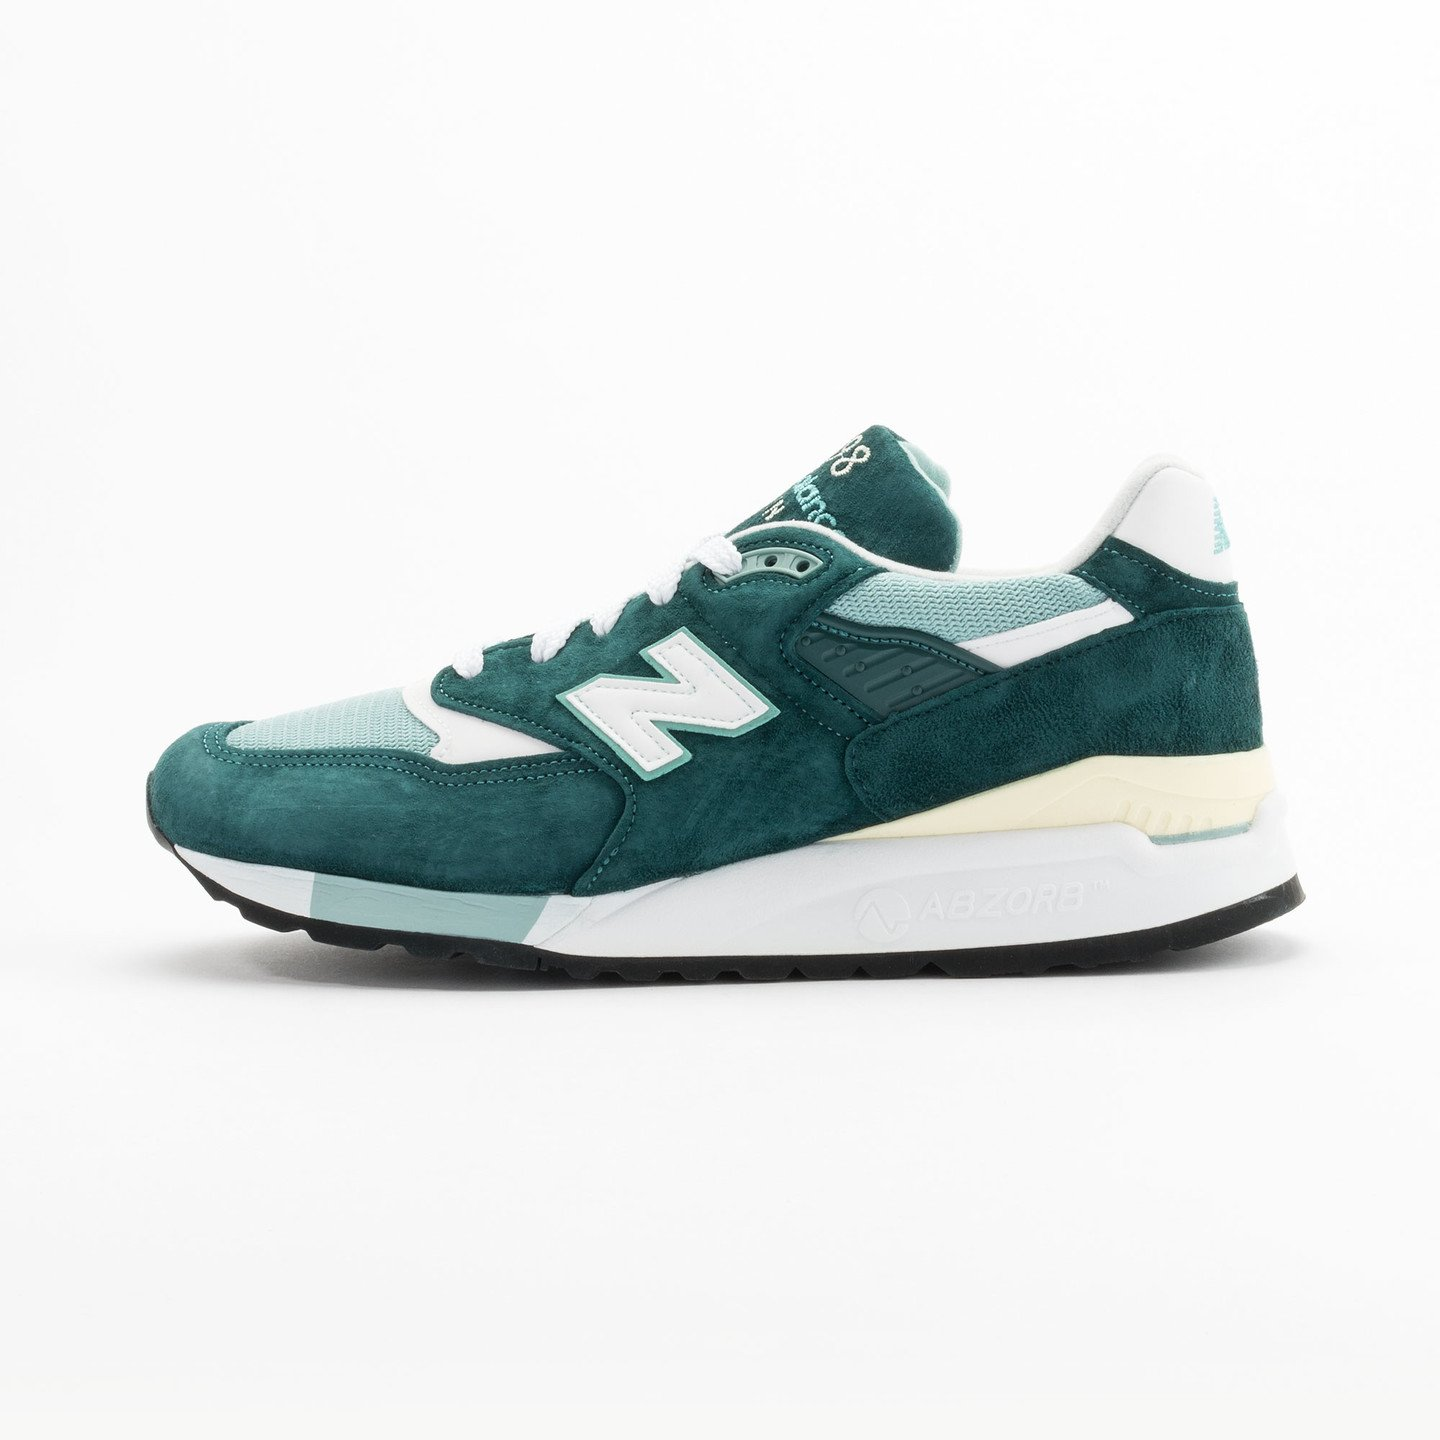 New Balance M998 Made in USA Sea Green / White M998CSAM-46.5